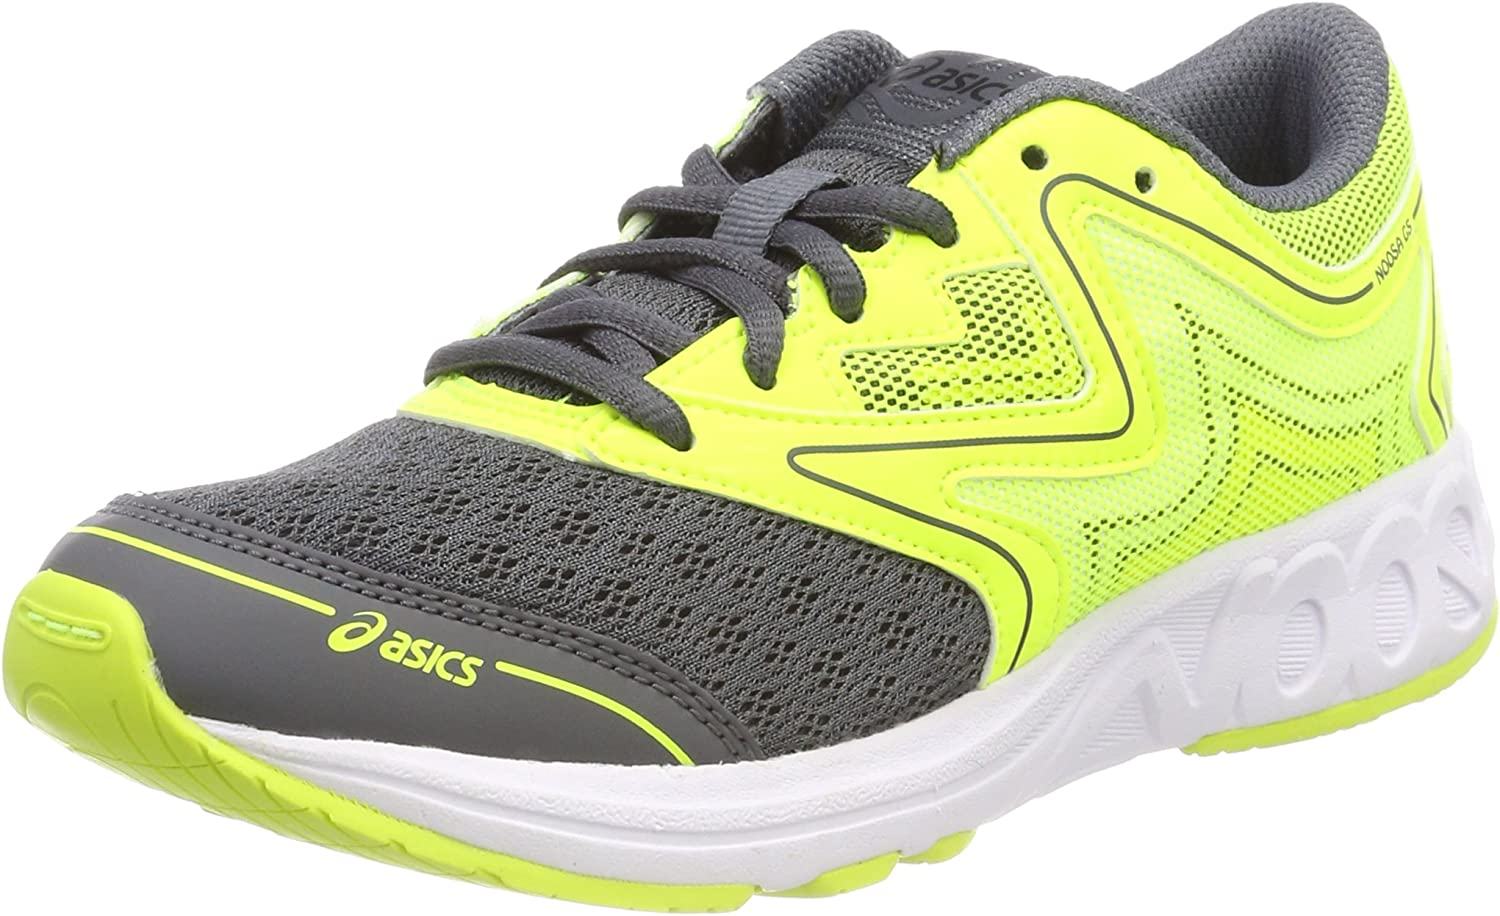 Asics Noosa GS, Zapatillas de Running Unisex Adulto, Amarillo (Carbon/Safety Yellow/Mid Grey 9707), 40 EU: Amazon.es: Zapatos y complementos